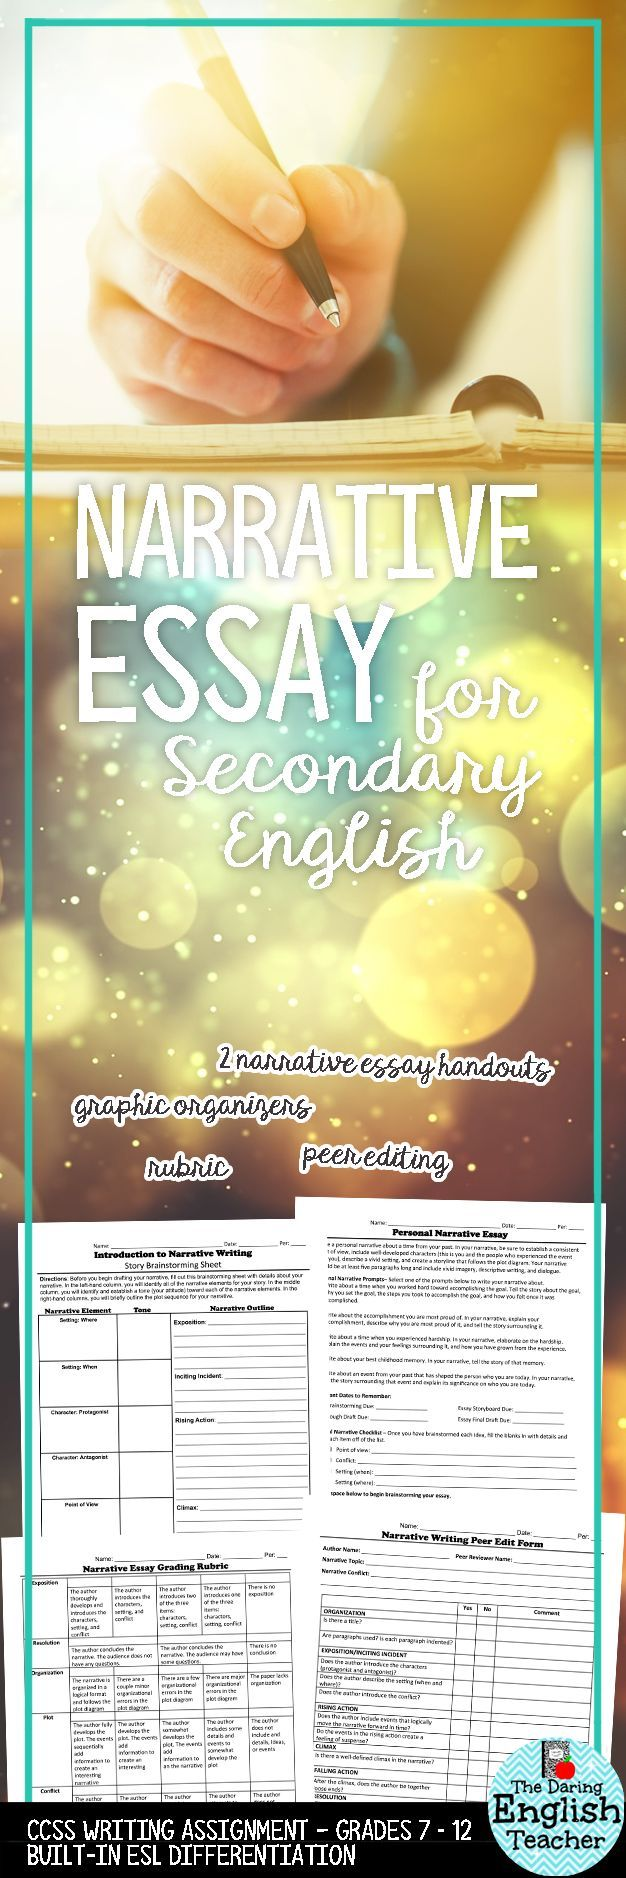 Engage your students in the narrative writing process with this complete narrative essay assignment. This resource includes two different kinds of narrative assignments: a personal narrative and a fictional narrative. This is ideal for the middle school or high school English language arts classroom.